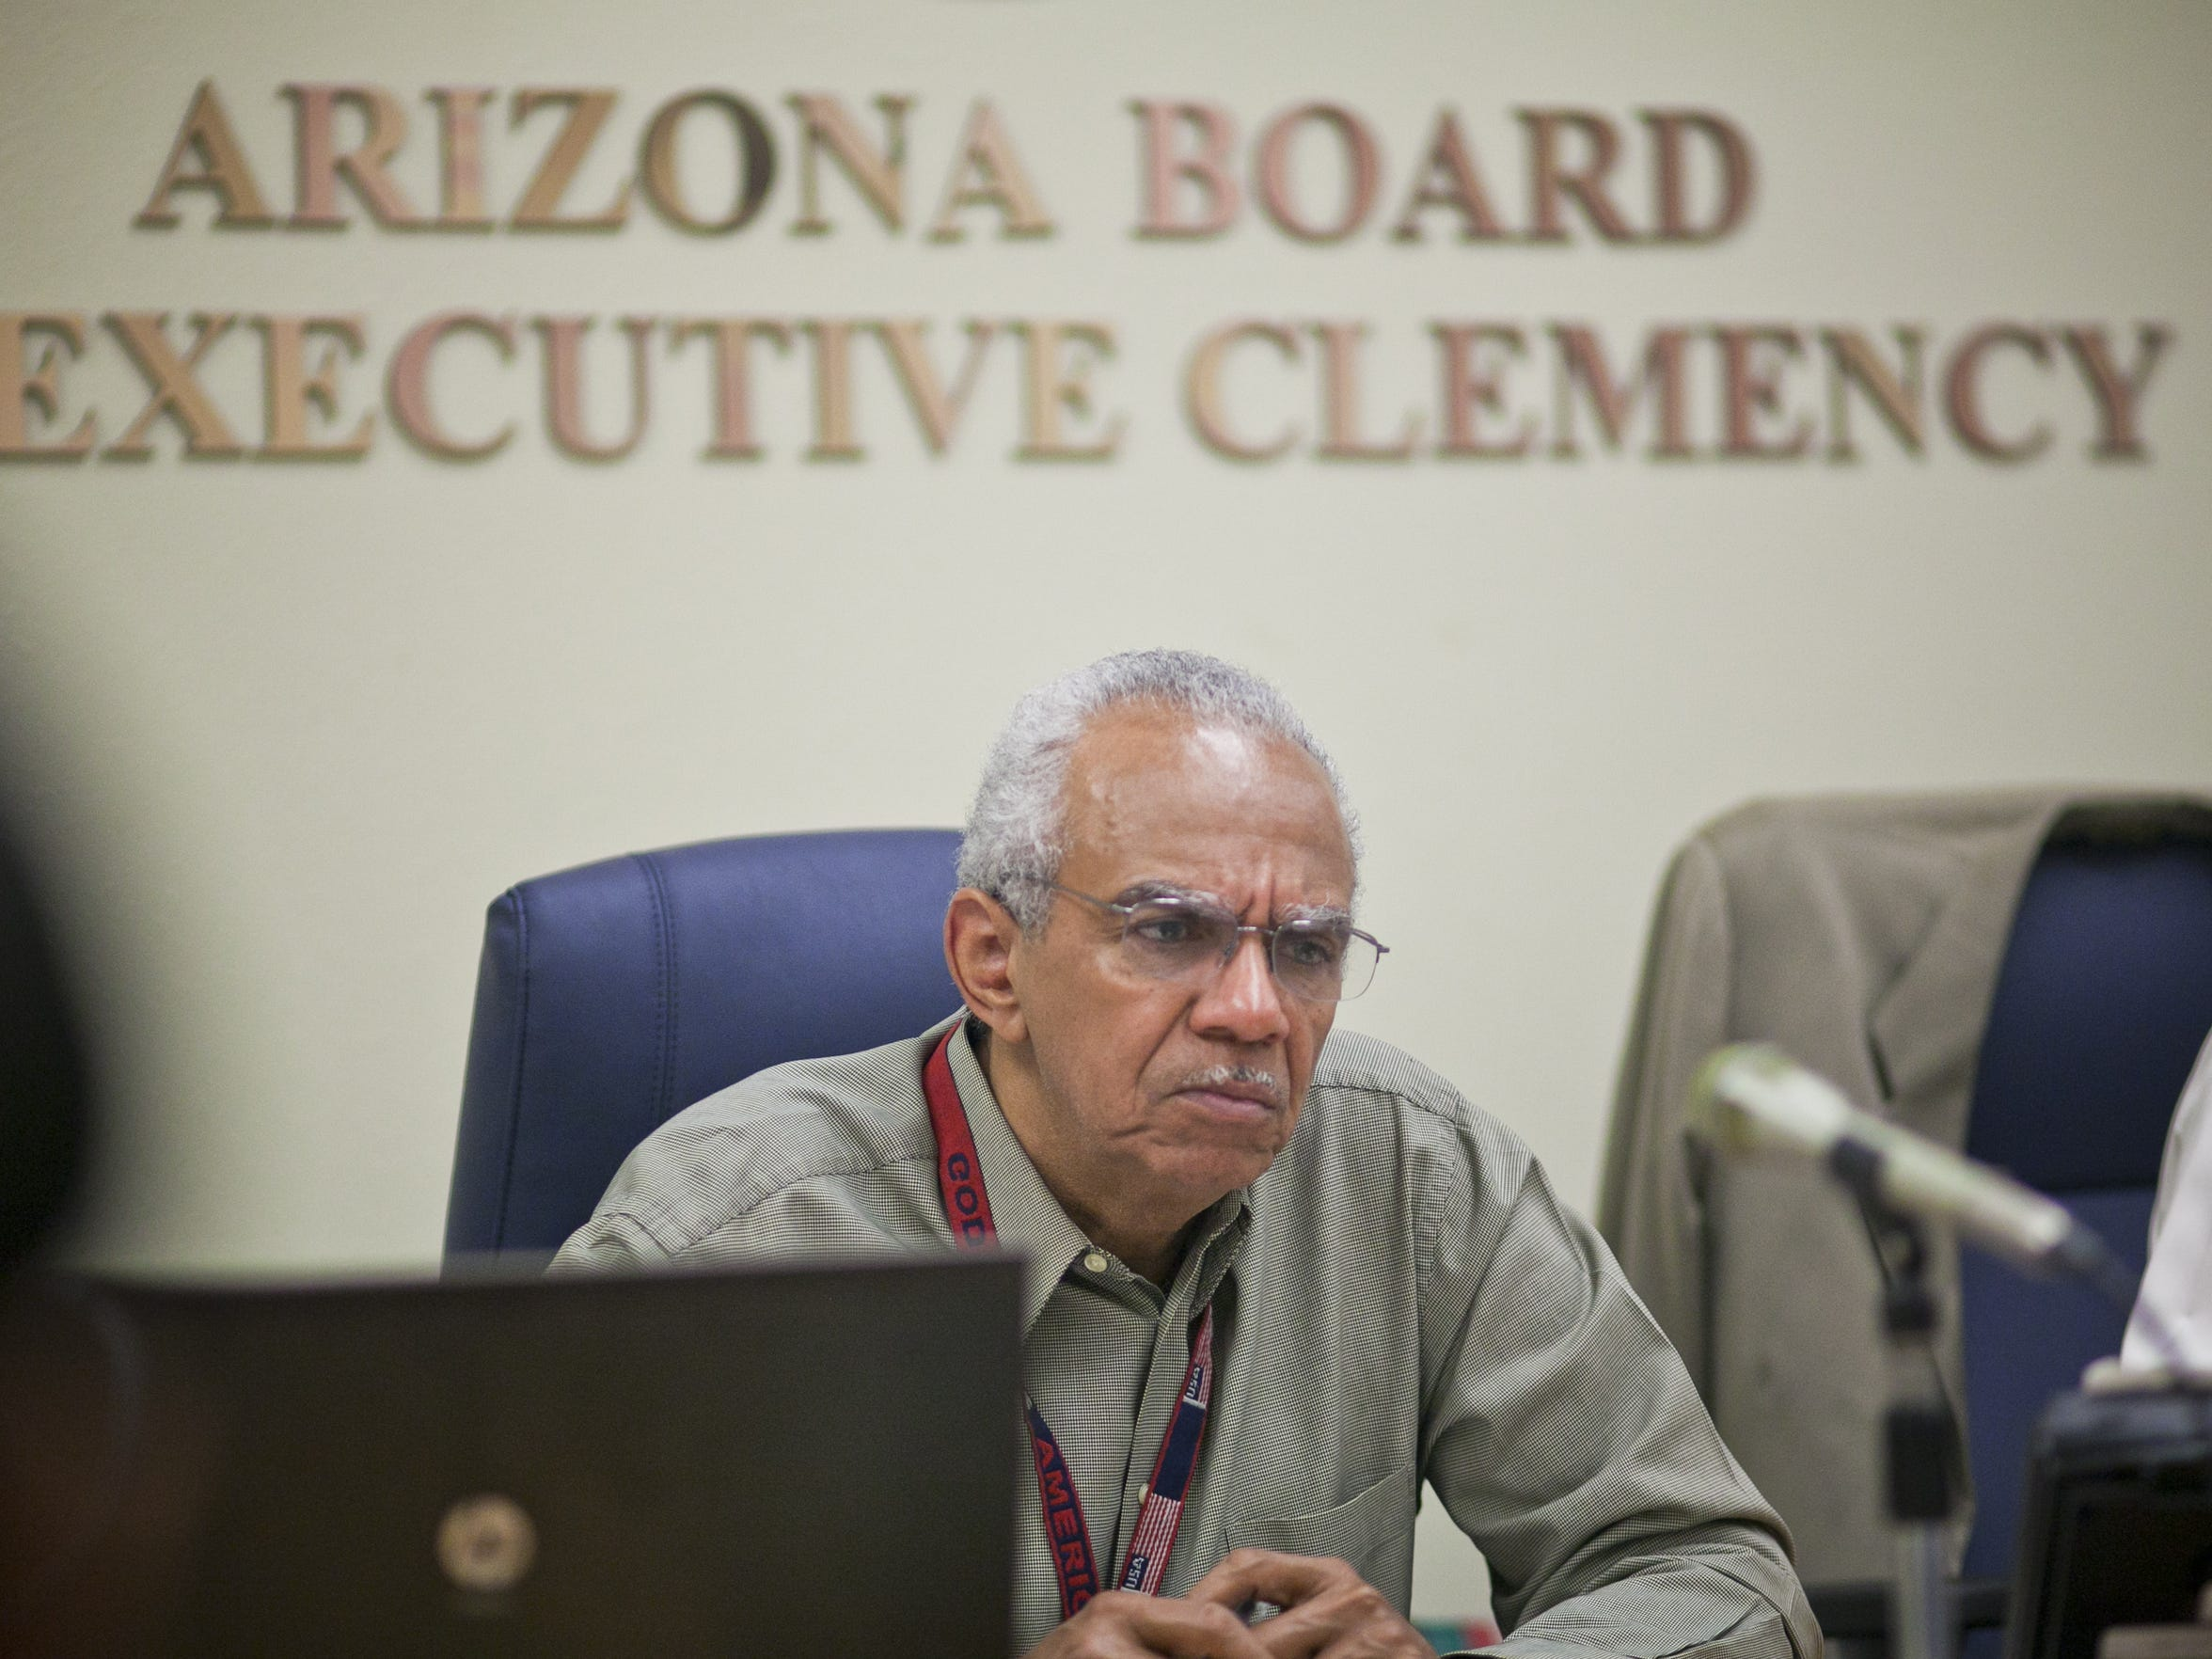 Duane Belcher, chairman of the Arizona Board of Executive